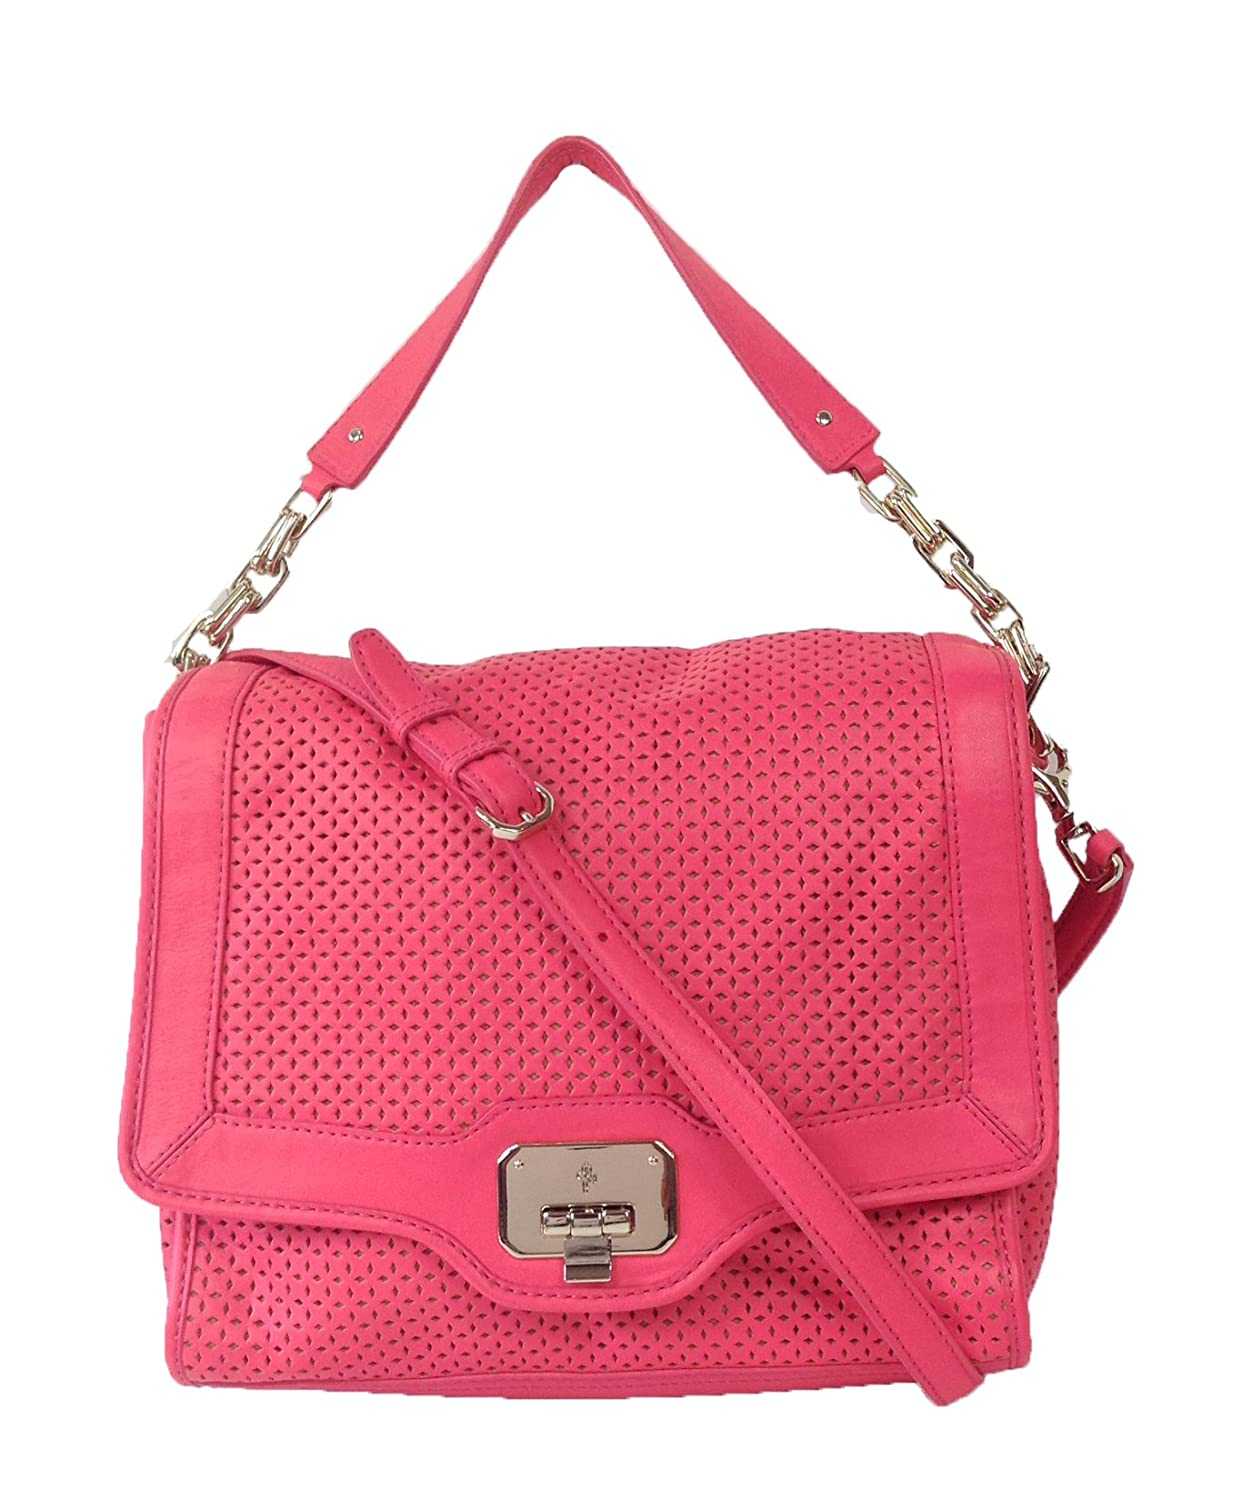 Cole Haan Vintage Valise Novelty Jenna Shoulder Bag, Punch Pink